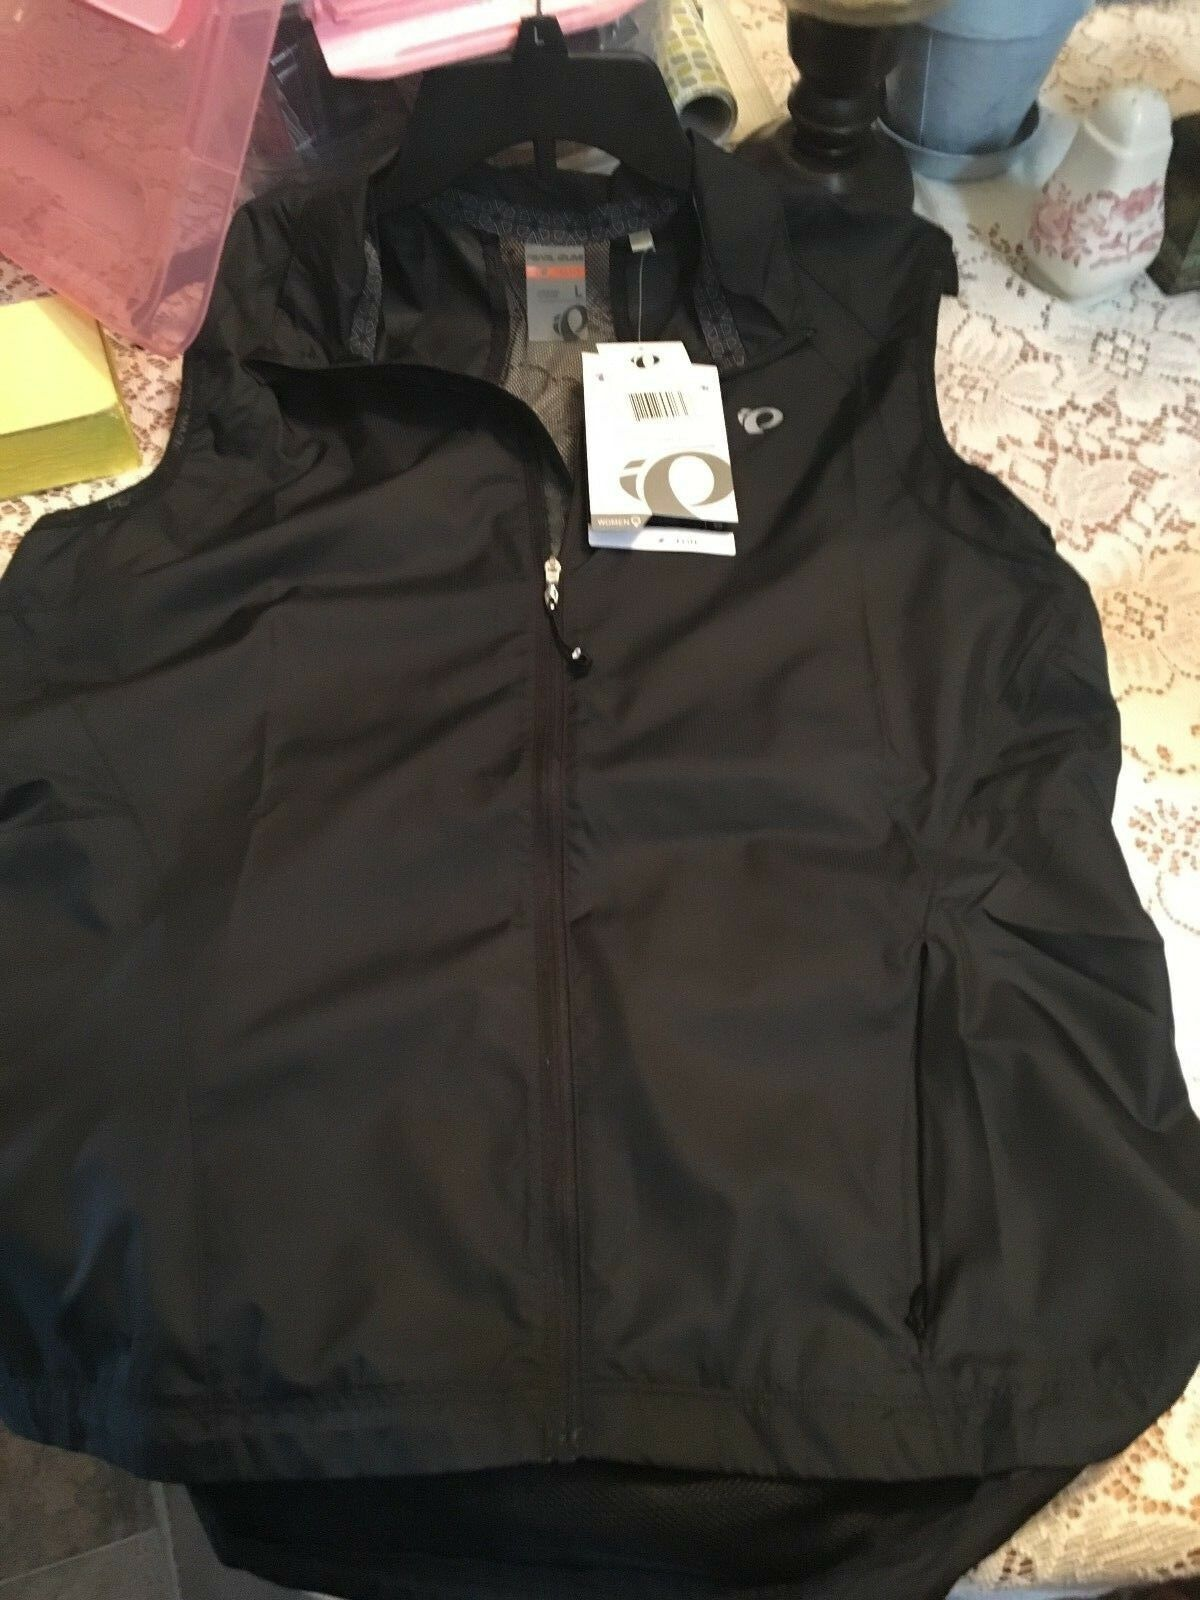 Windvest  by Pearl Izumi, women's size large, brand new never worn.  excellent prices